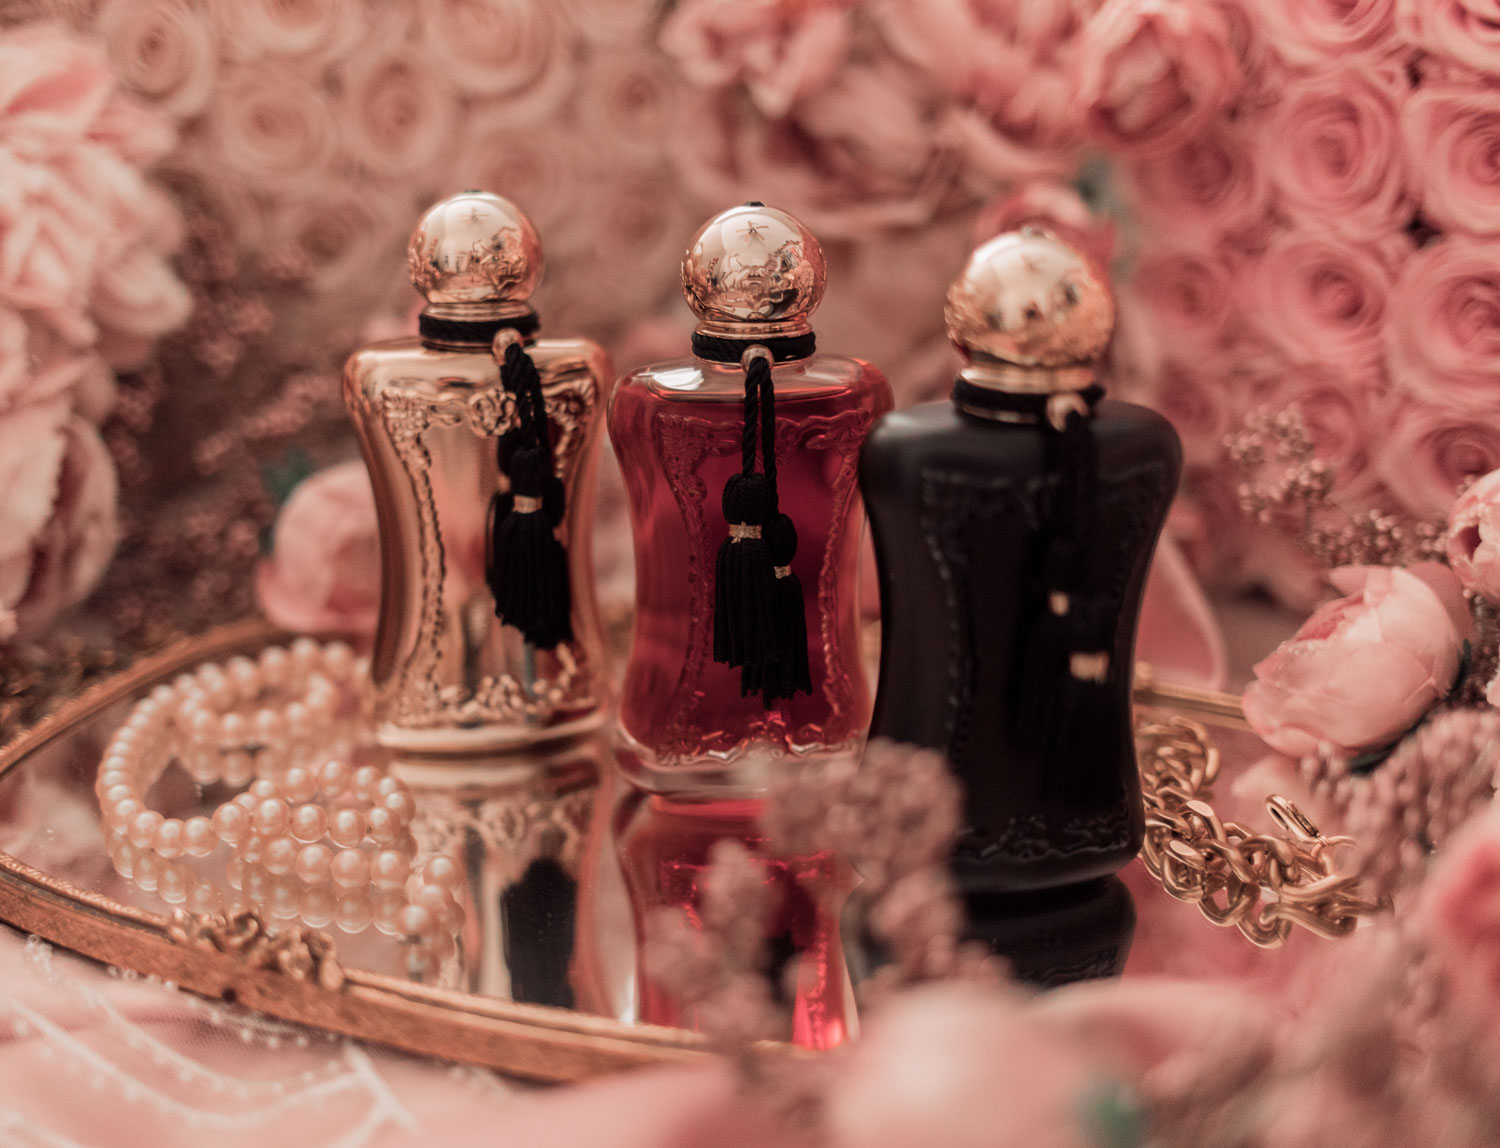 Feminine fashion and beauty blogger Elizabeth Hugen of Lizzie in Lace shares the Parfums de Marly feminine perfume collection